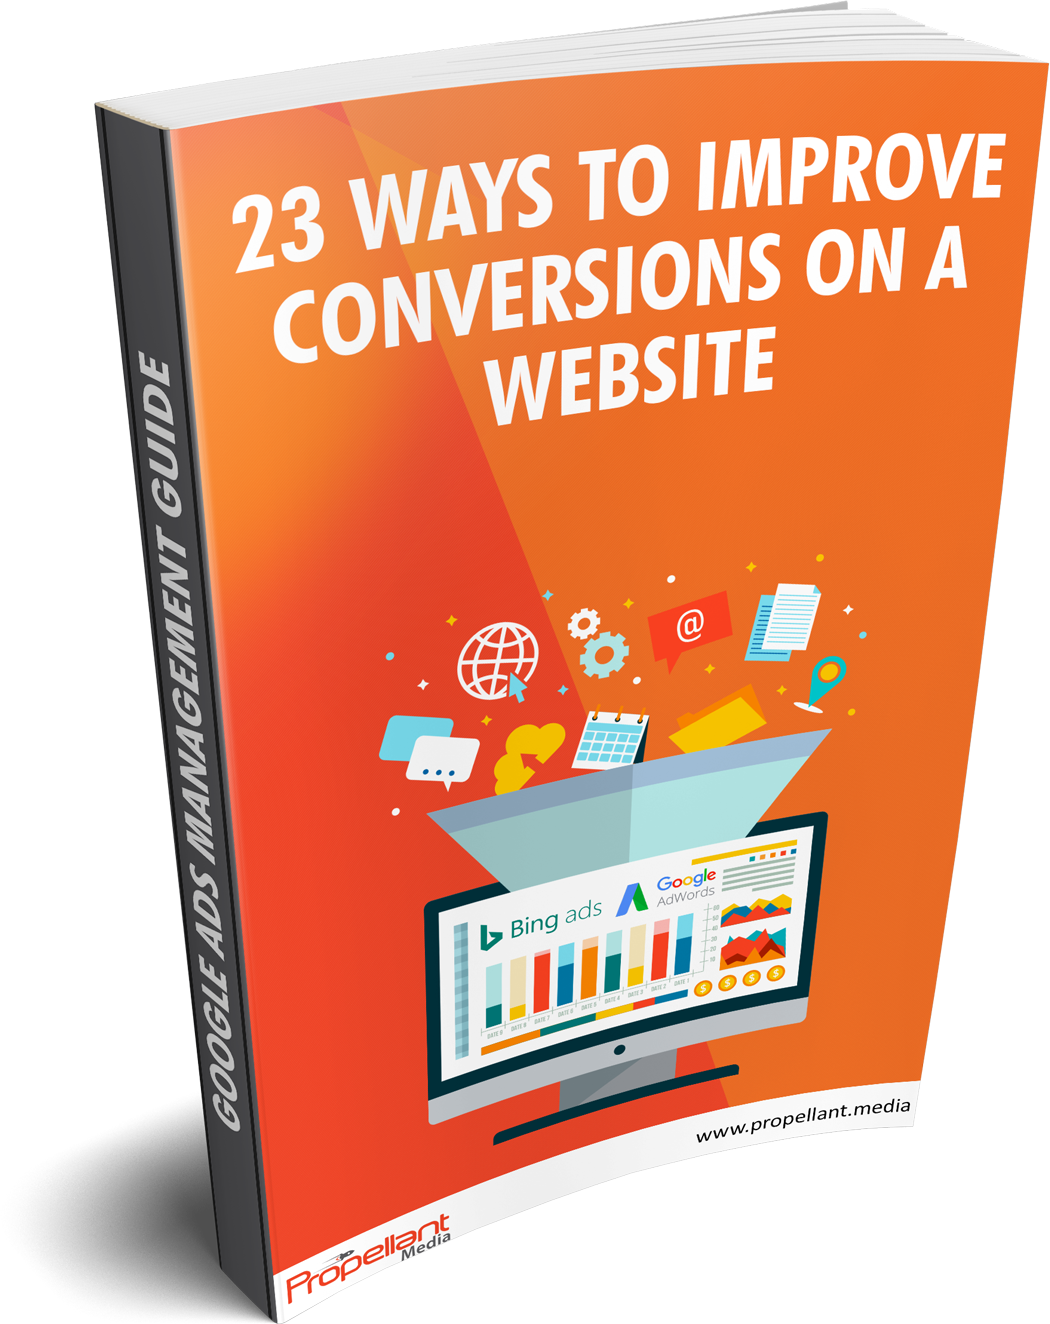 23 Ways To Improve Conversions On A Website Or Landing Page